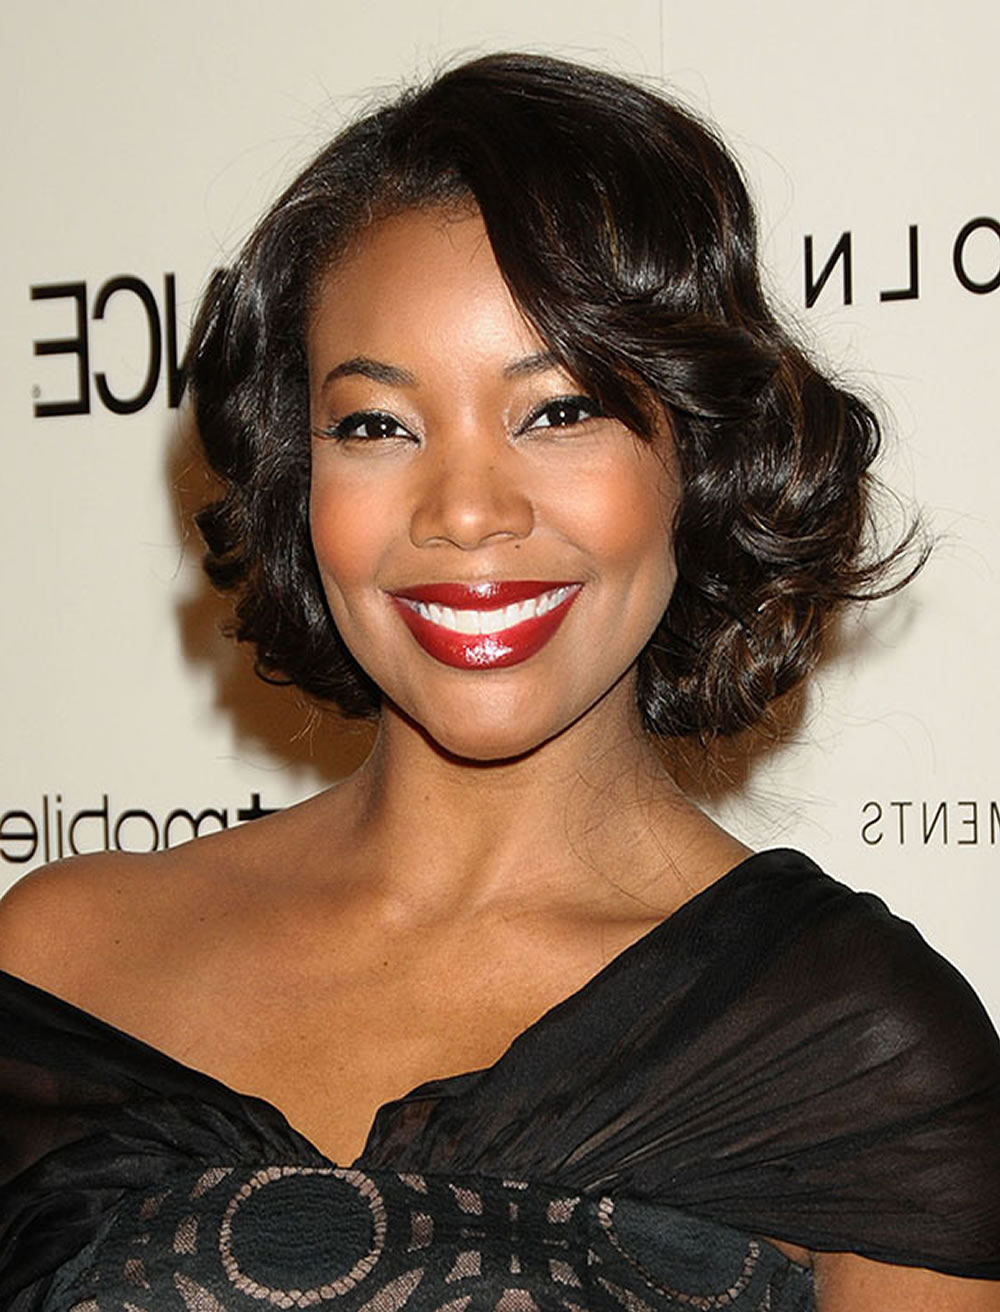 Layered Bob Hair Ideas For Black Women With Round Face – Hairstyles In Black Short Layered Hairstyles (View 21 of 25)